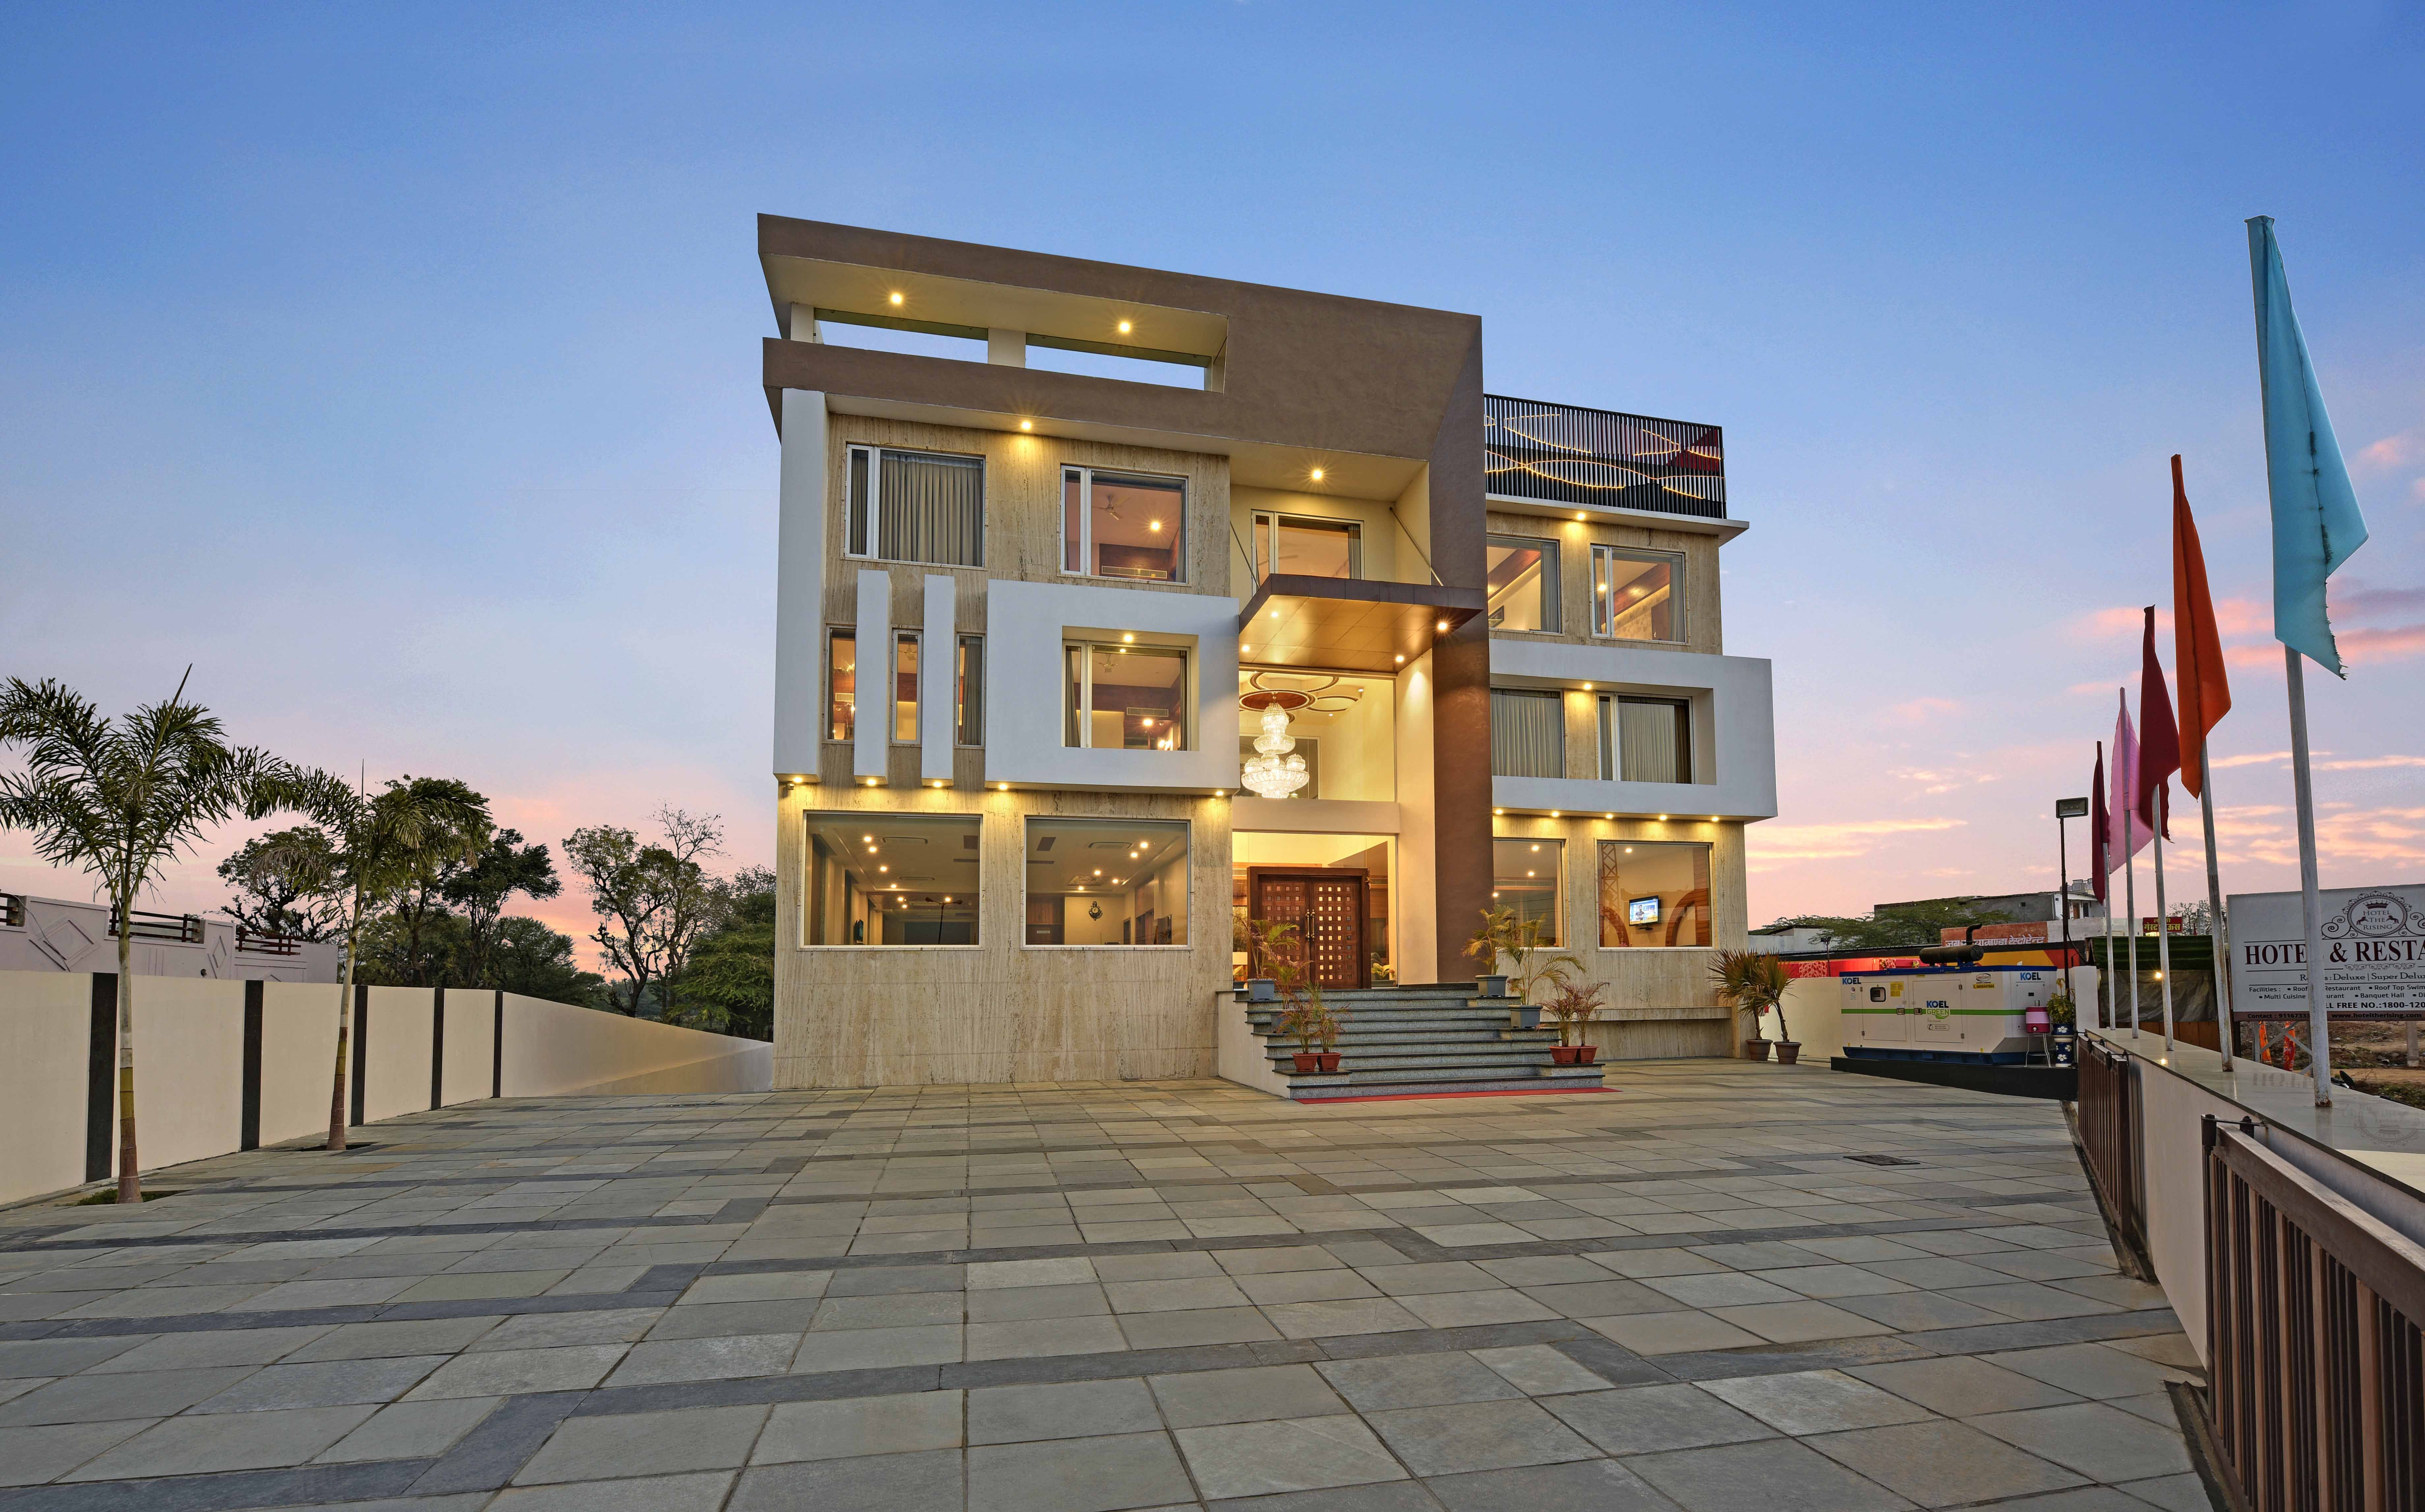 Best hotels in udaipur   Hotels in Udaipur